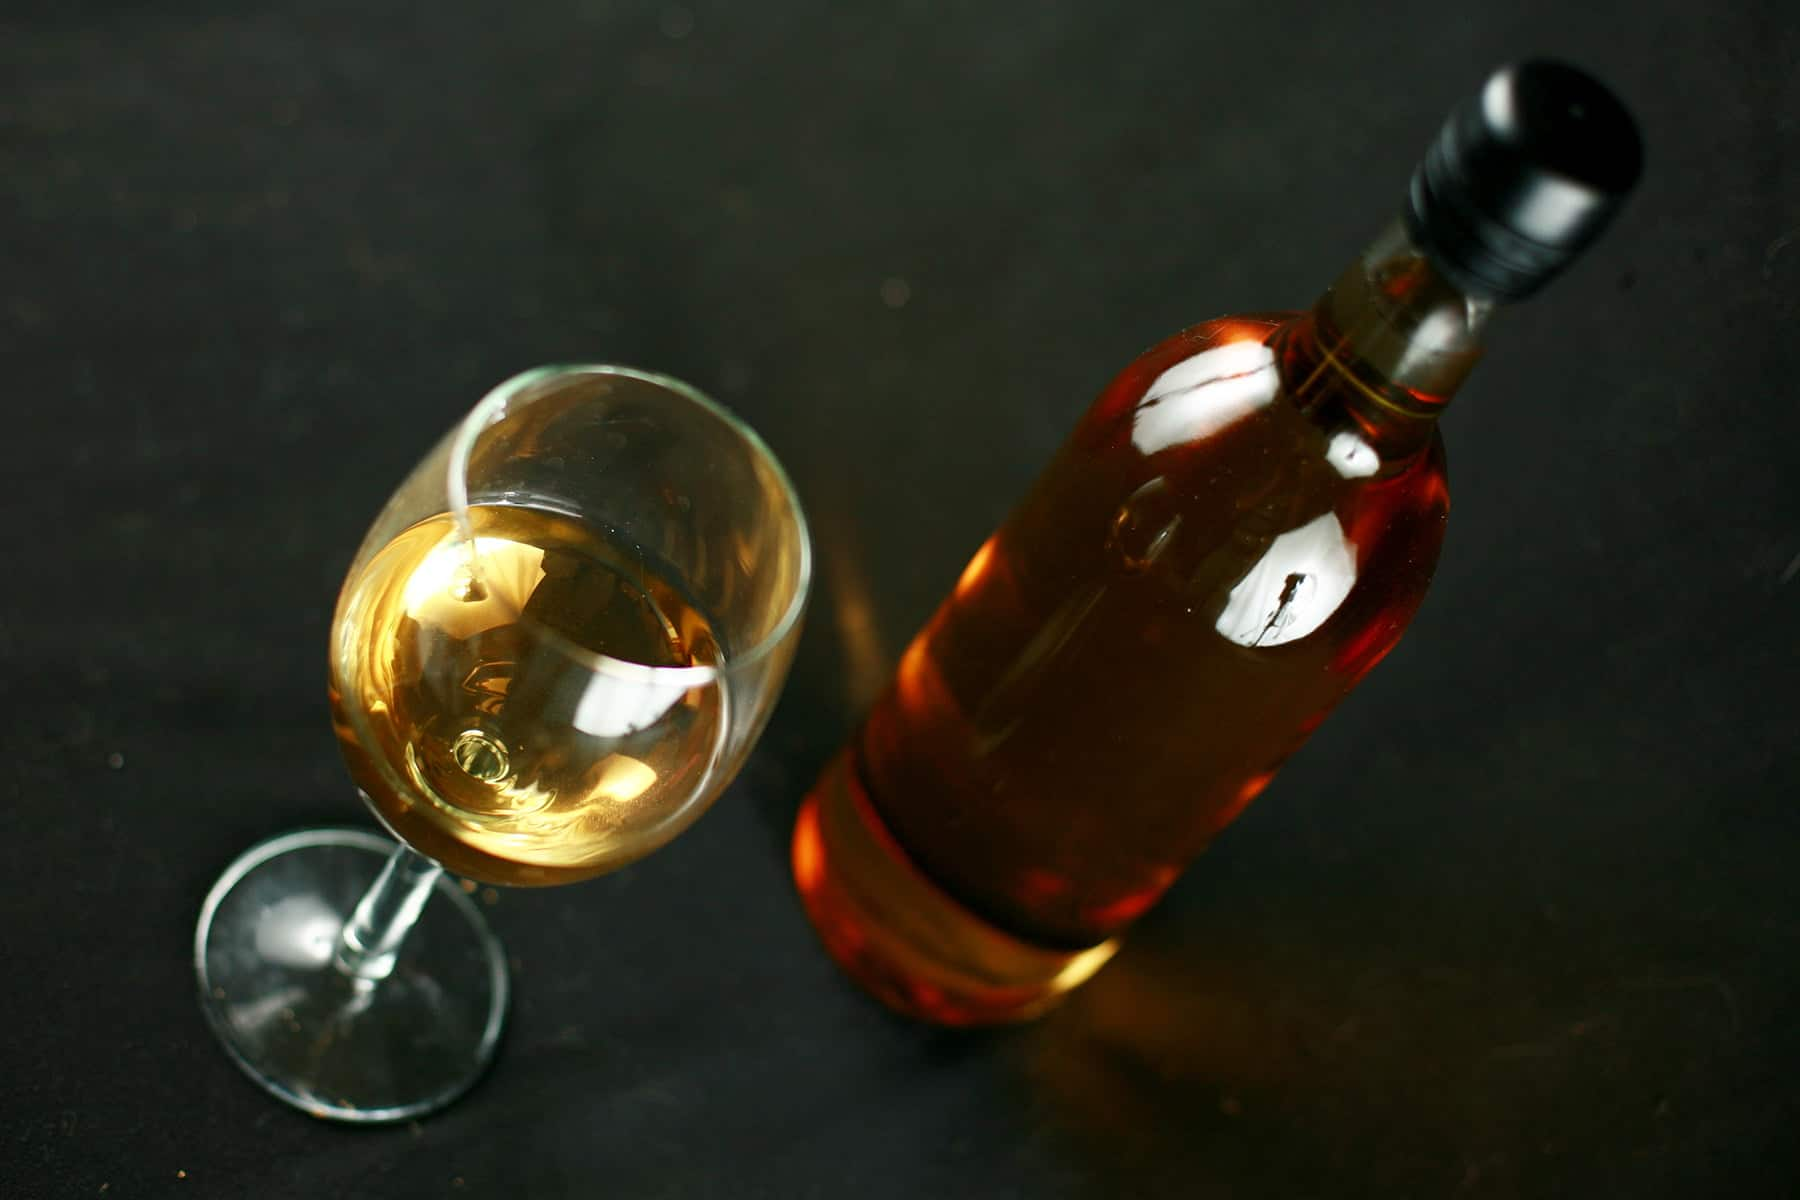 A wine glass and a wine bottle are filled with golden banana wine, against a black background.